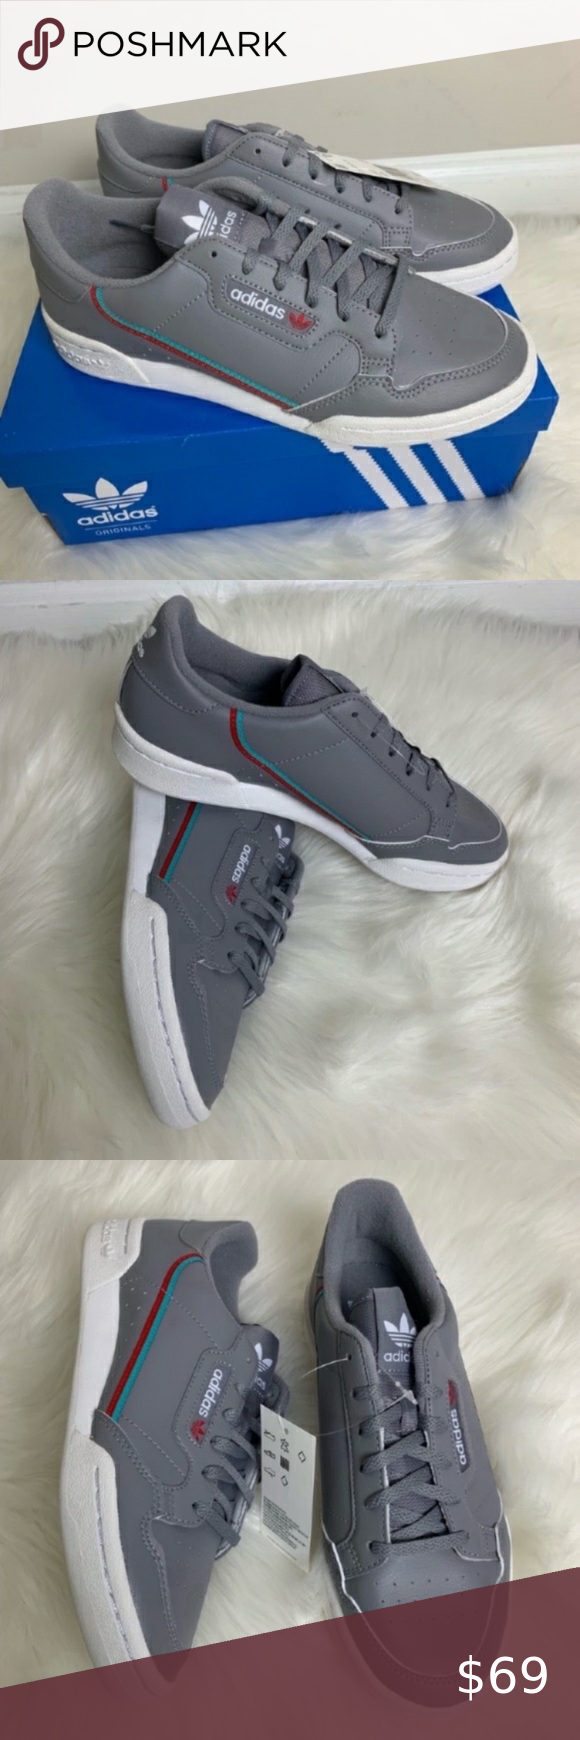 youth size 6 sneakers